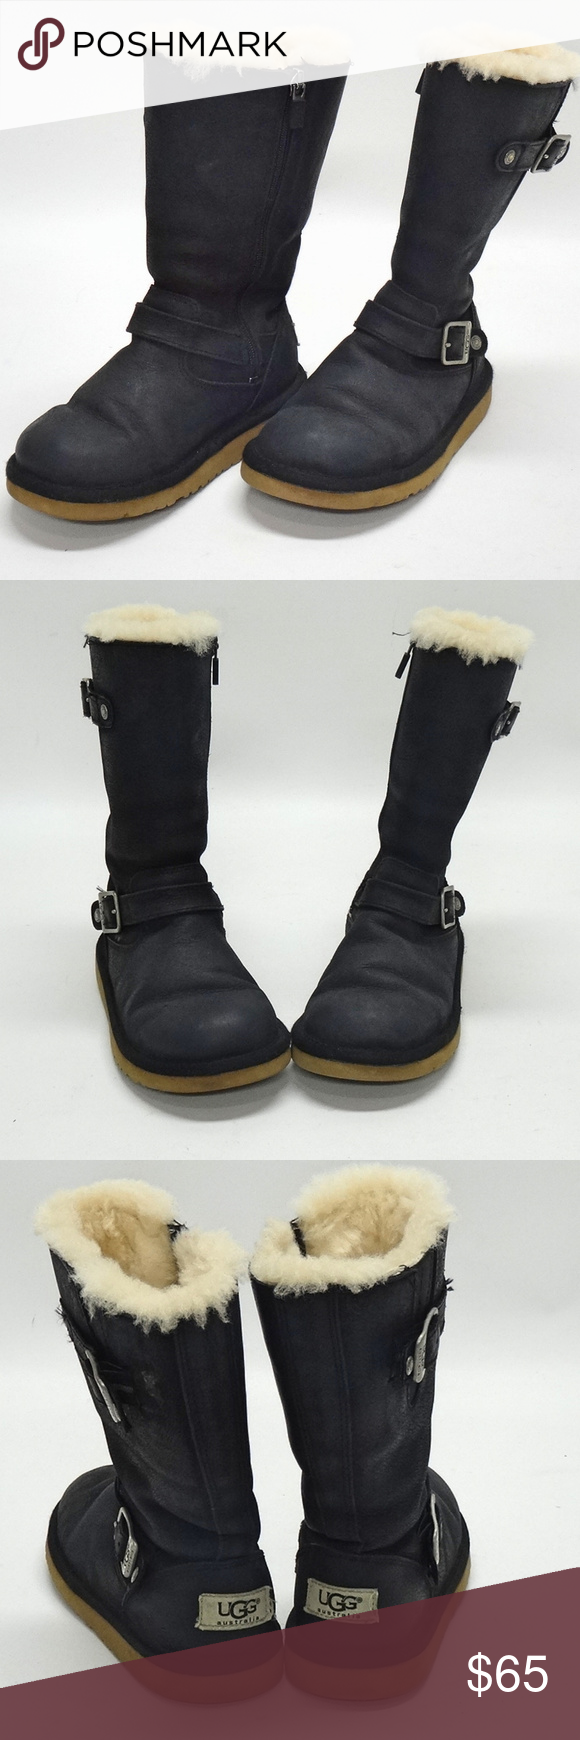 UGG Girls Black Suede Faux Shearling Winter Boots UGG 1969 GIRLS BLACK SUEDE FAUX SHEARLING LINED WINTER/SNOW BOOTS IN SOLD BLACK  YOUNG KIDS/YOUTH SIZE 13US/12UK/30EU  ZIPPERED SIDES MAKES IT EASY FOR PUTTING ON AND TAKING OFF MEASURES 9 FROM SOLE TO TOP  EXCELLENT PRE-OWNED CONDITION - MINIMAL SCUFFS THROUGHOUT - MINIMAL WEAR ON SOLES & UPPER ANKLES UGG Shoes Rain & Snow Boots #uggbootsoutfitblackgirl UGG Girls Black Suede Faux Shearling Winter Boots UGG 1969 GIRLS BLACK SUEDE FAUX SHEARLIN #uggbootsoutfitblackgirl